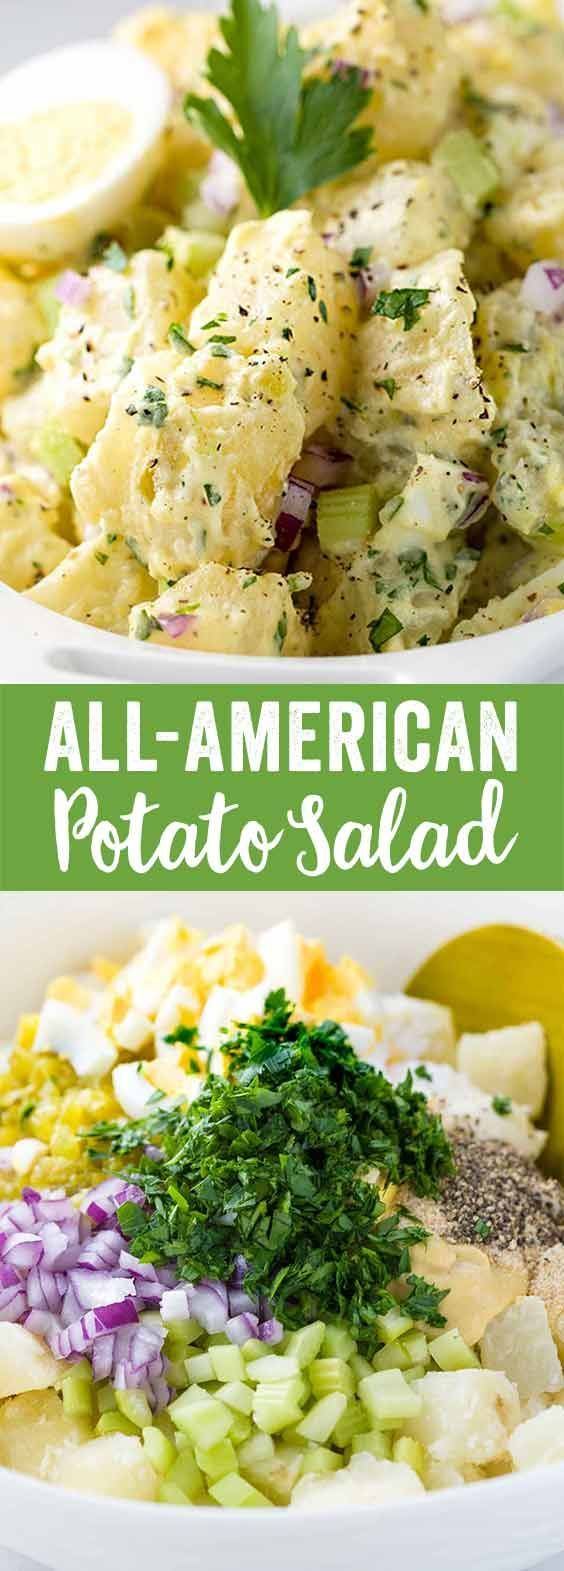 Easy All-American Potato Salad #potatosalad